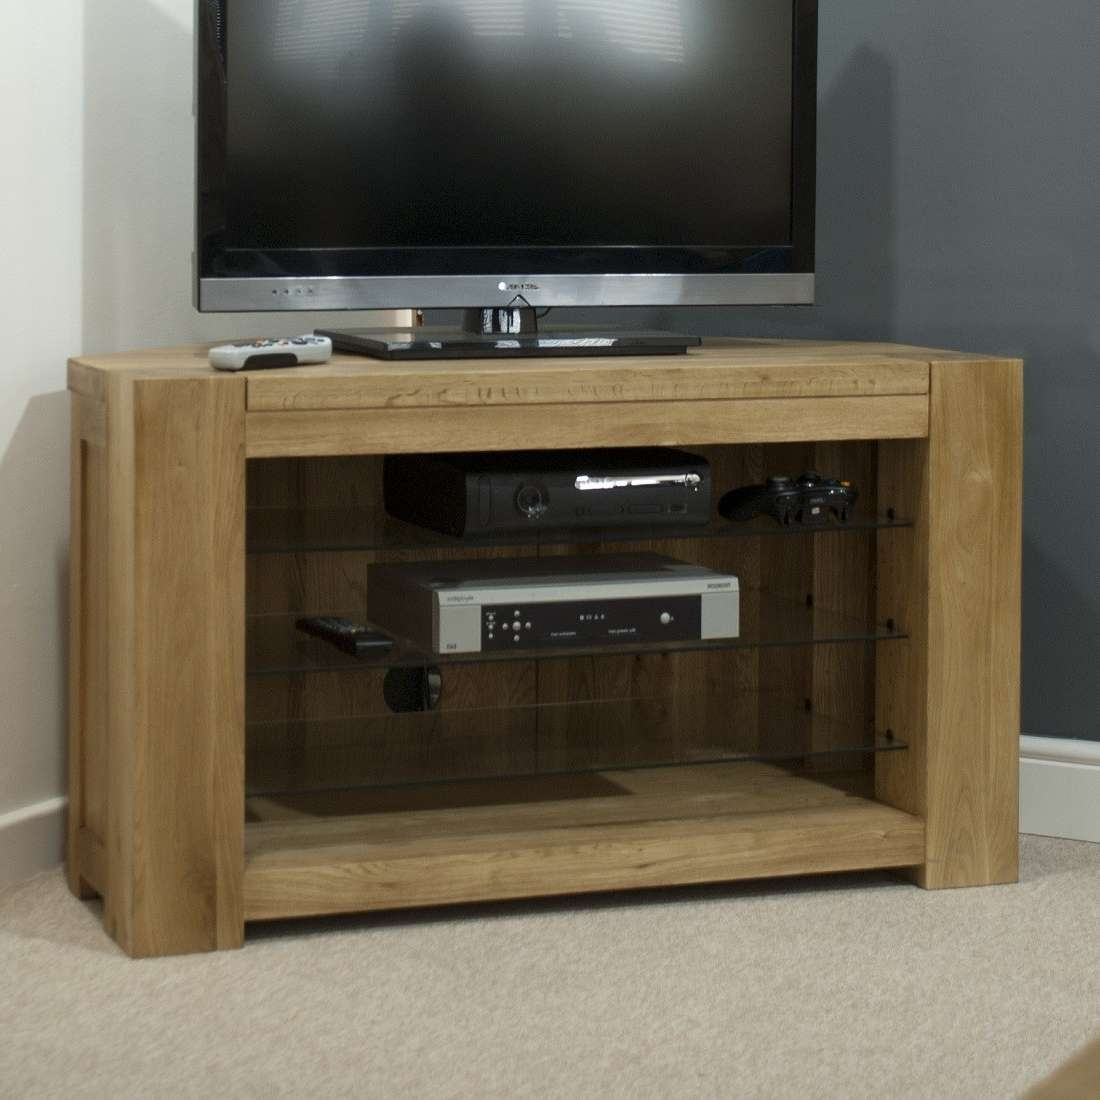 Trend Solid Oak Corner Tv Unit | Oak Furniture Uk In Contemporary Oak Tv Cabinets (View 18 of 20)